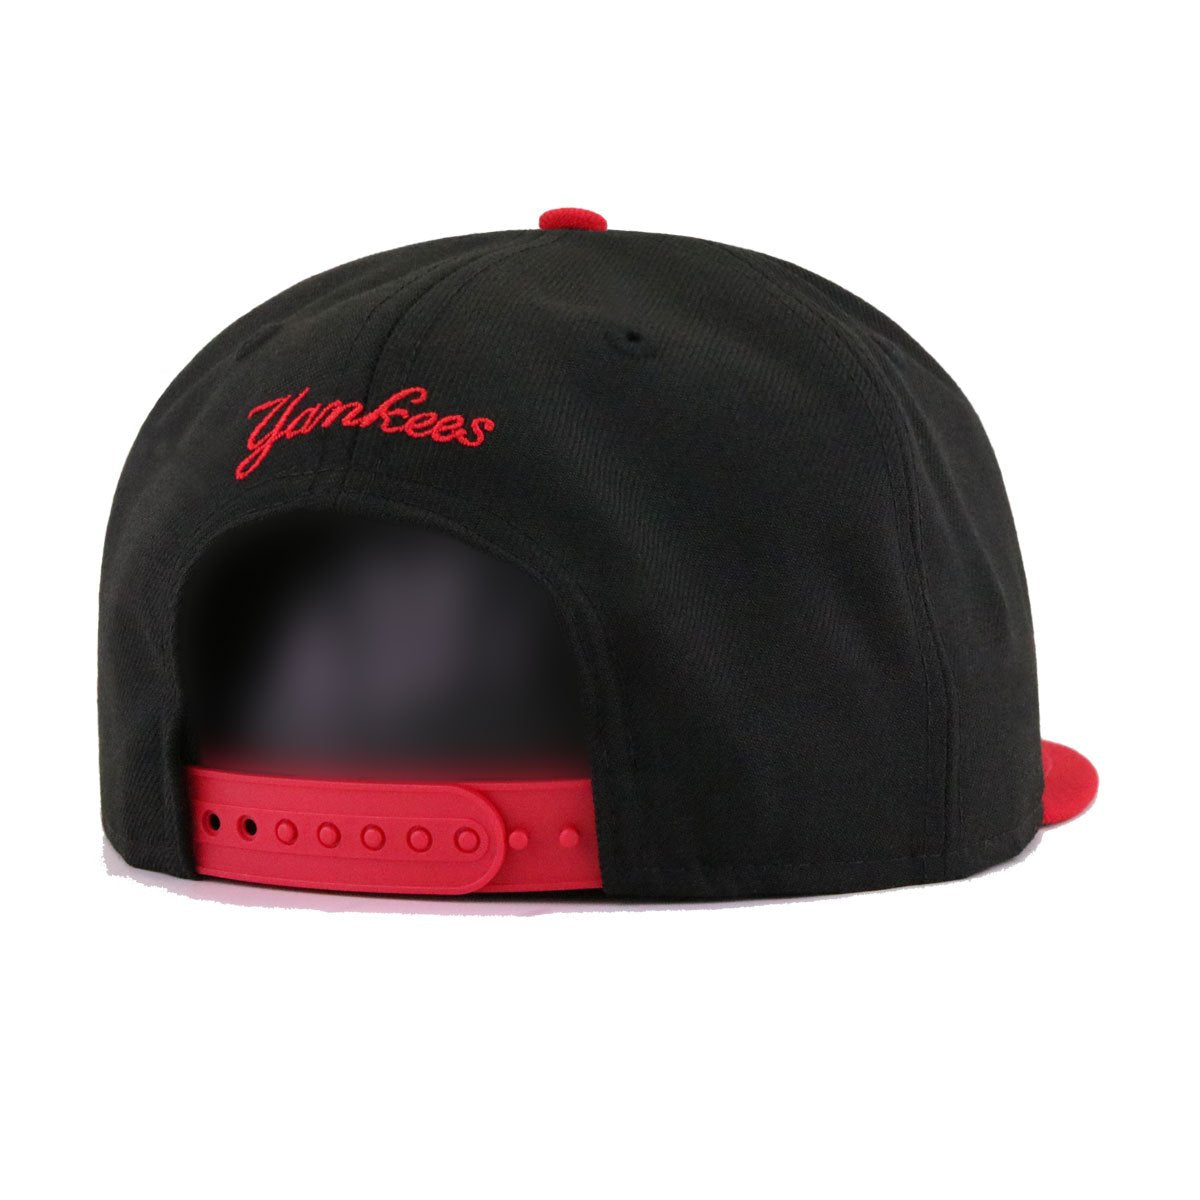 New York Yankees Black Scarlet v2 New Era 9Fifty Snapback